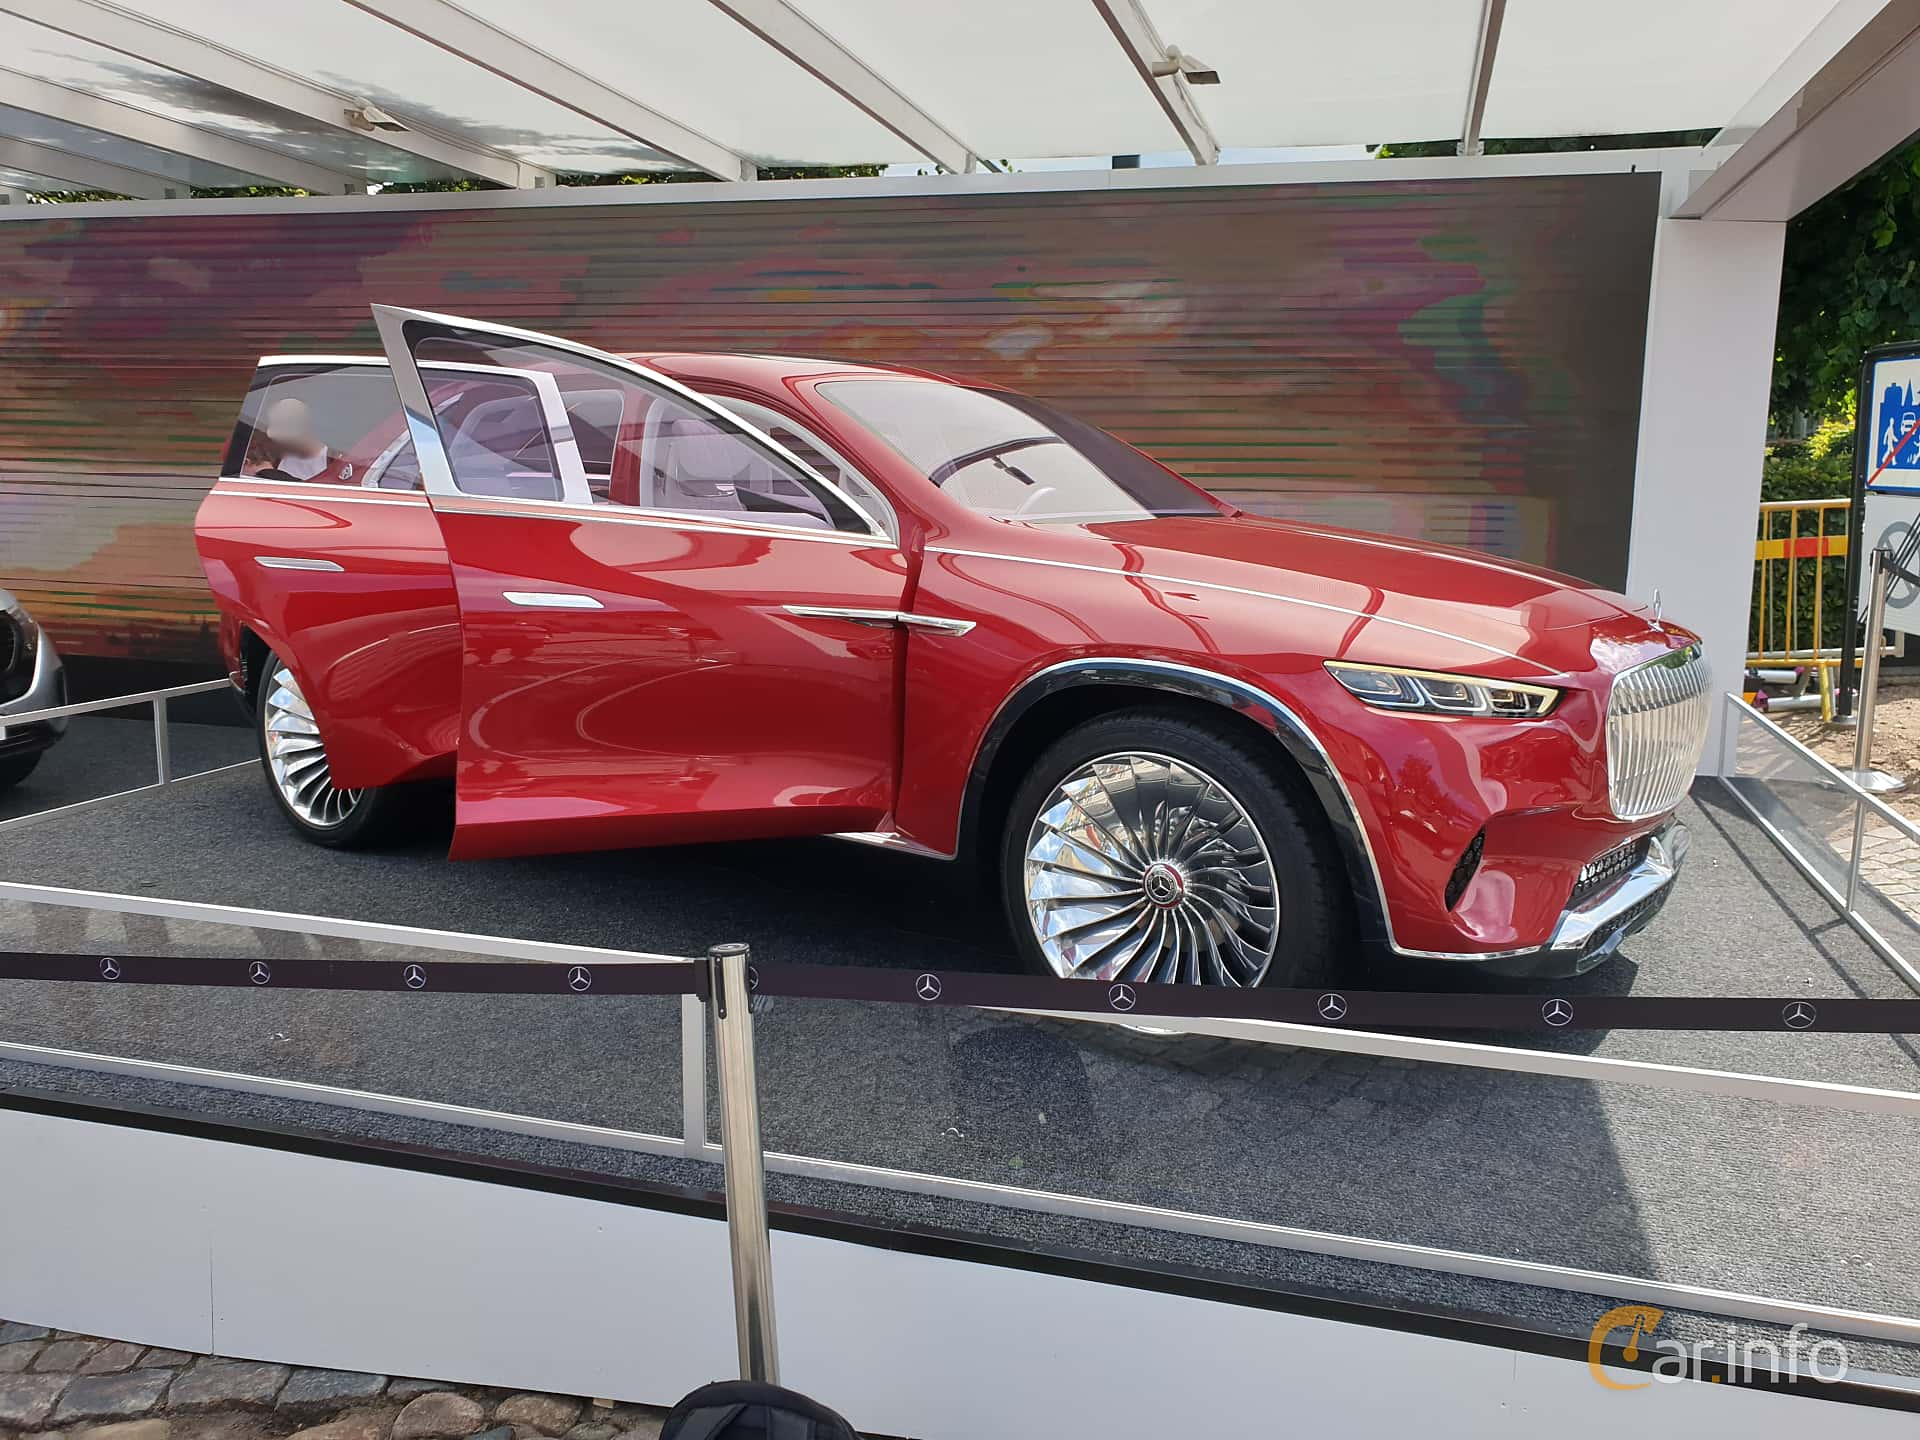 Mercedes-Benz Vision Mercedes-Maybach Ultimate Luxury 90 kWh Single Speed, 748hp, 2018